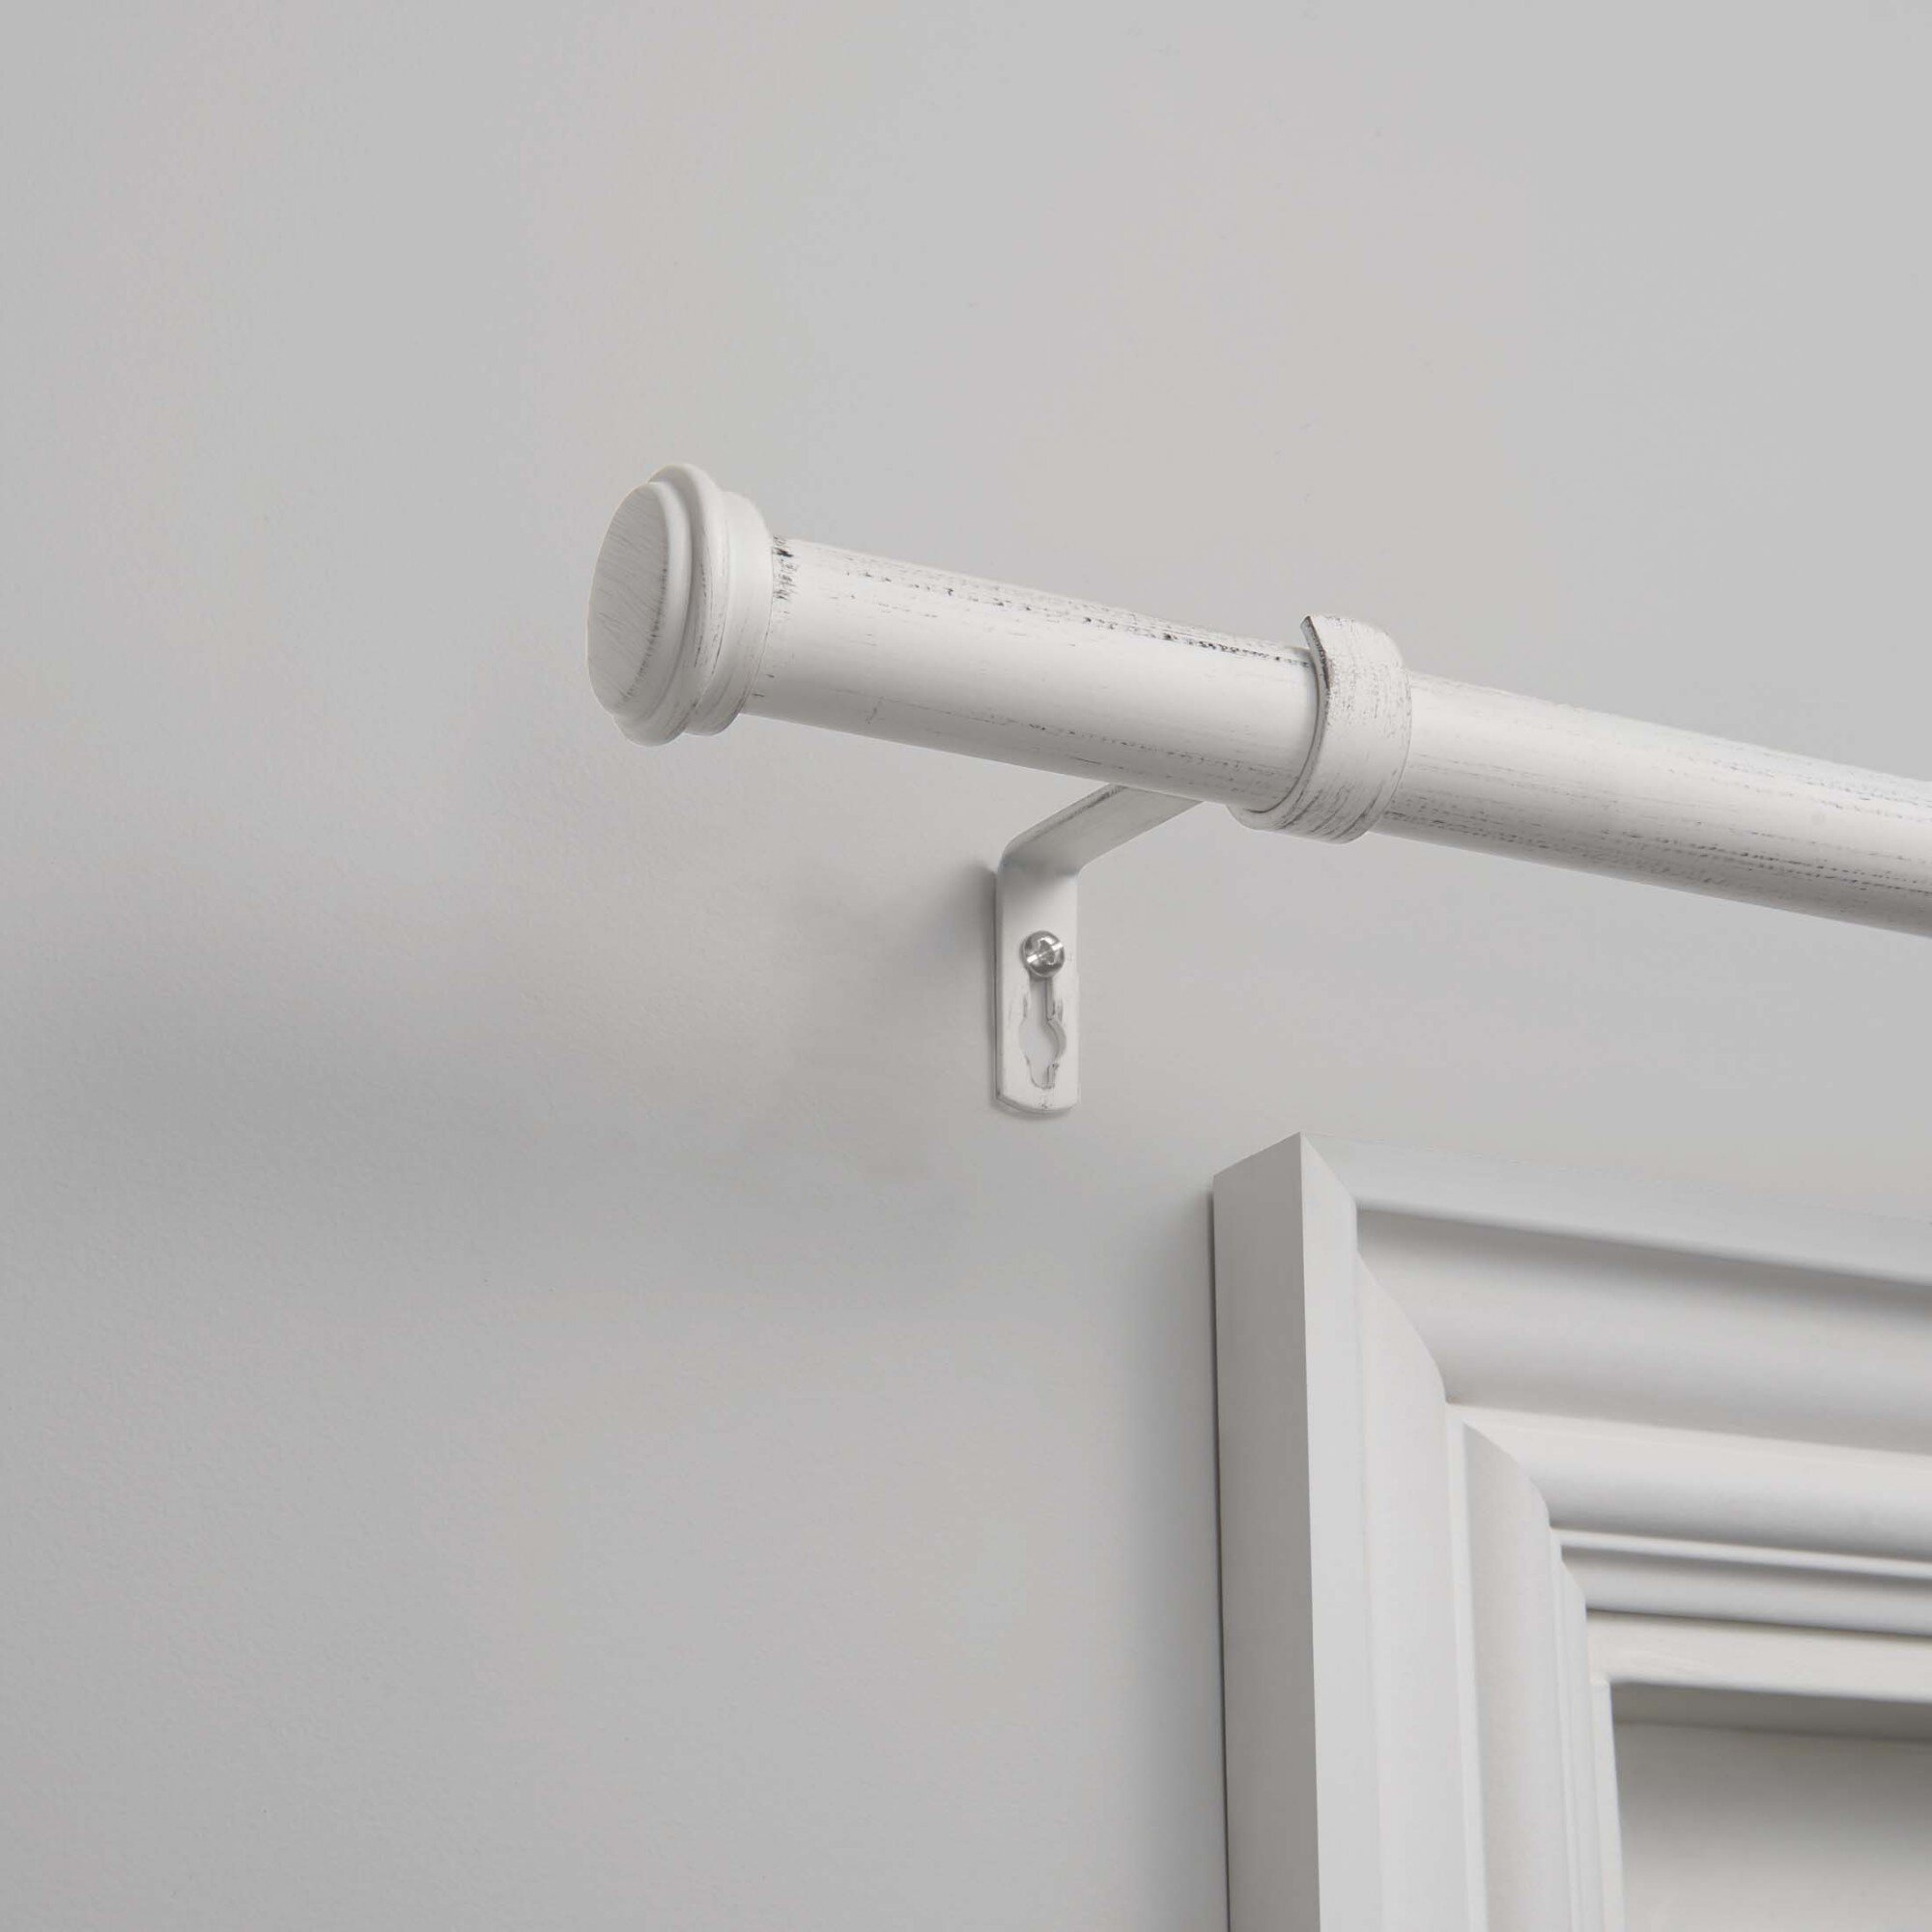 White Brayden Studio Curtain Hardware Accessories You Ll Love In 2021 Wayfair